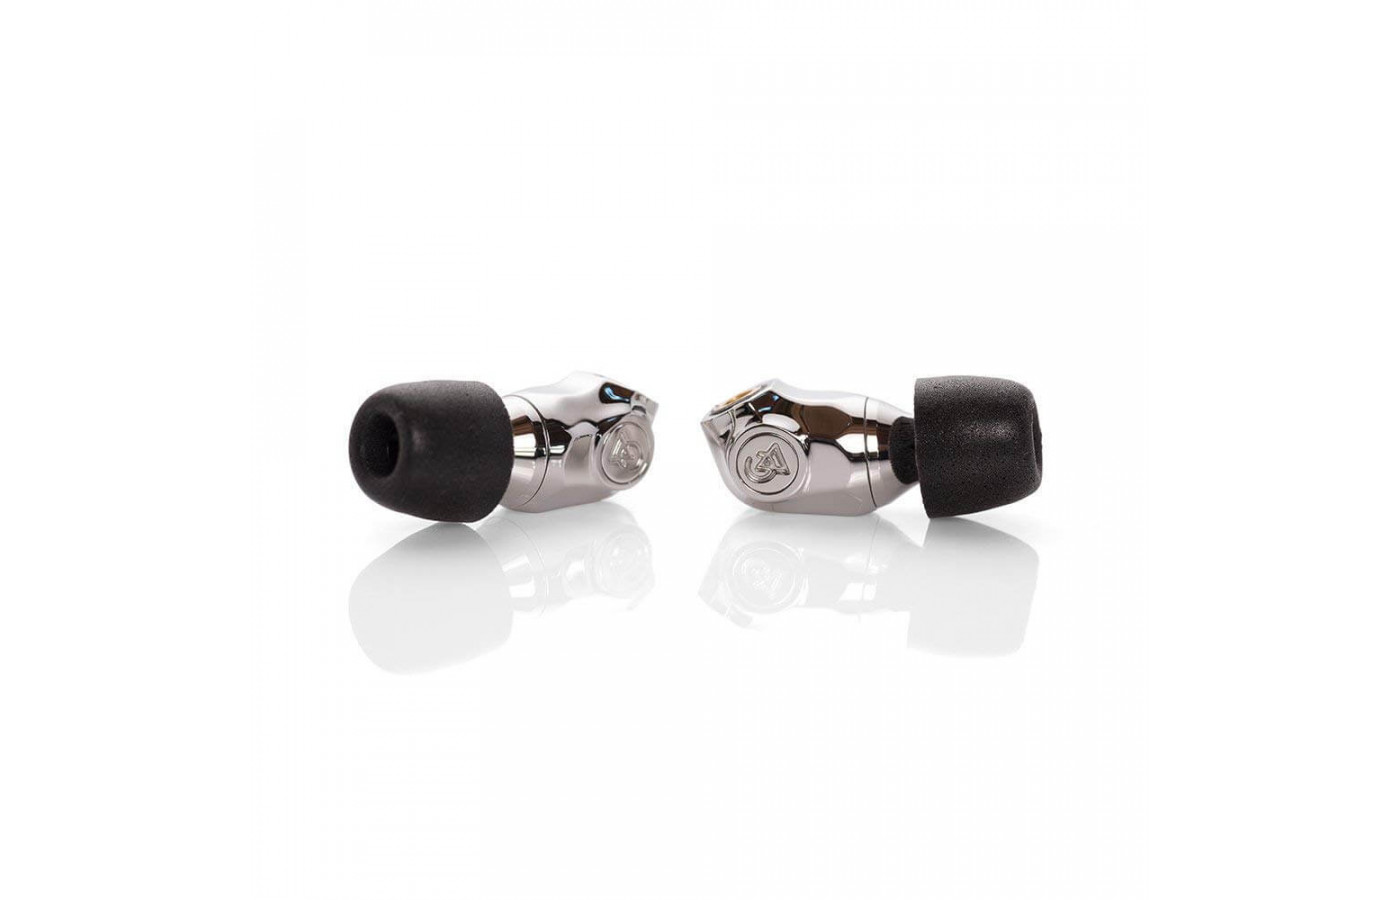 The Comet comes with three different ear tips in various sizes.